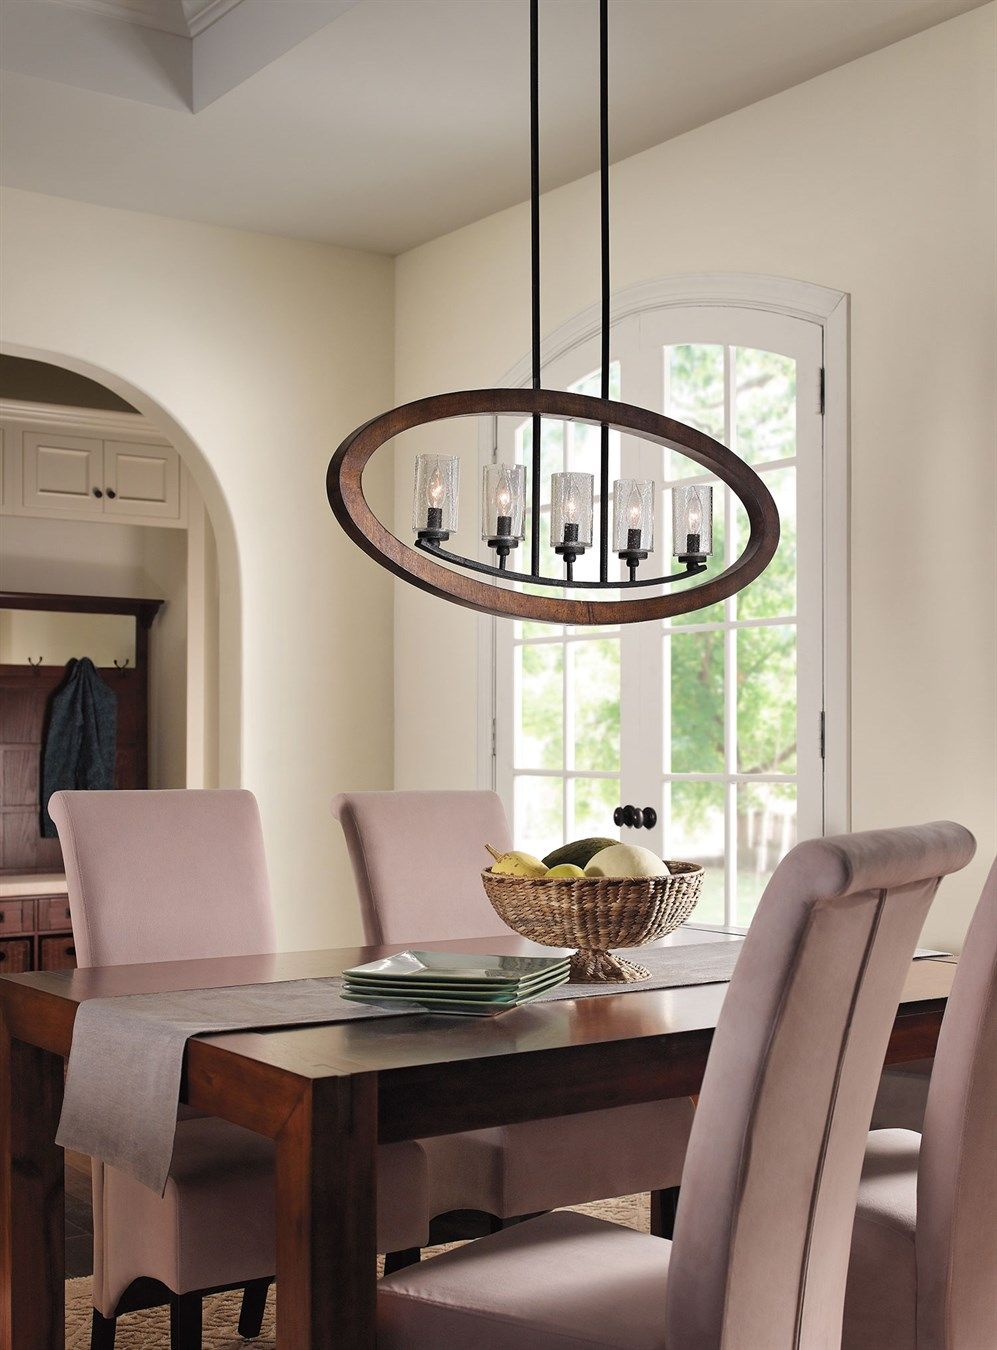 Kichler Dining Room Lighting Gorgeous Dining Room Lightinggrand Bank 5 Light Linear Chandelier Inspiration Design